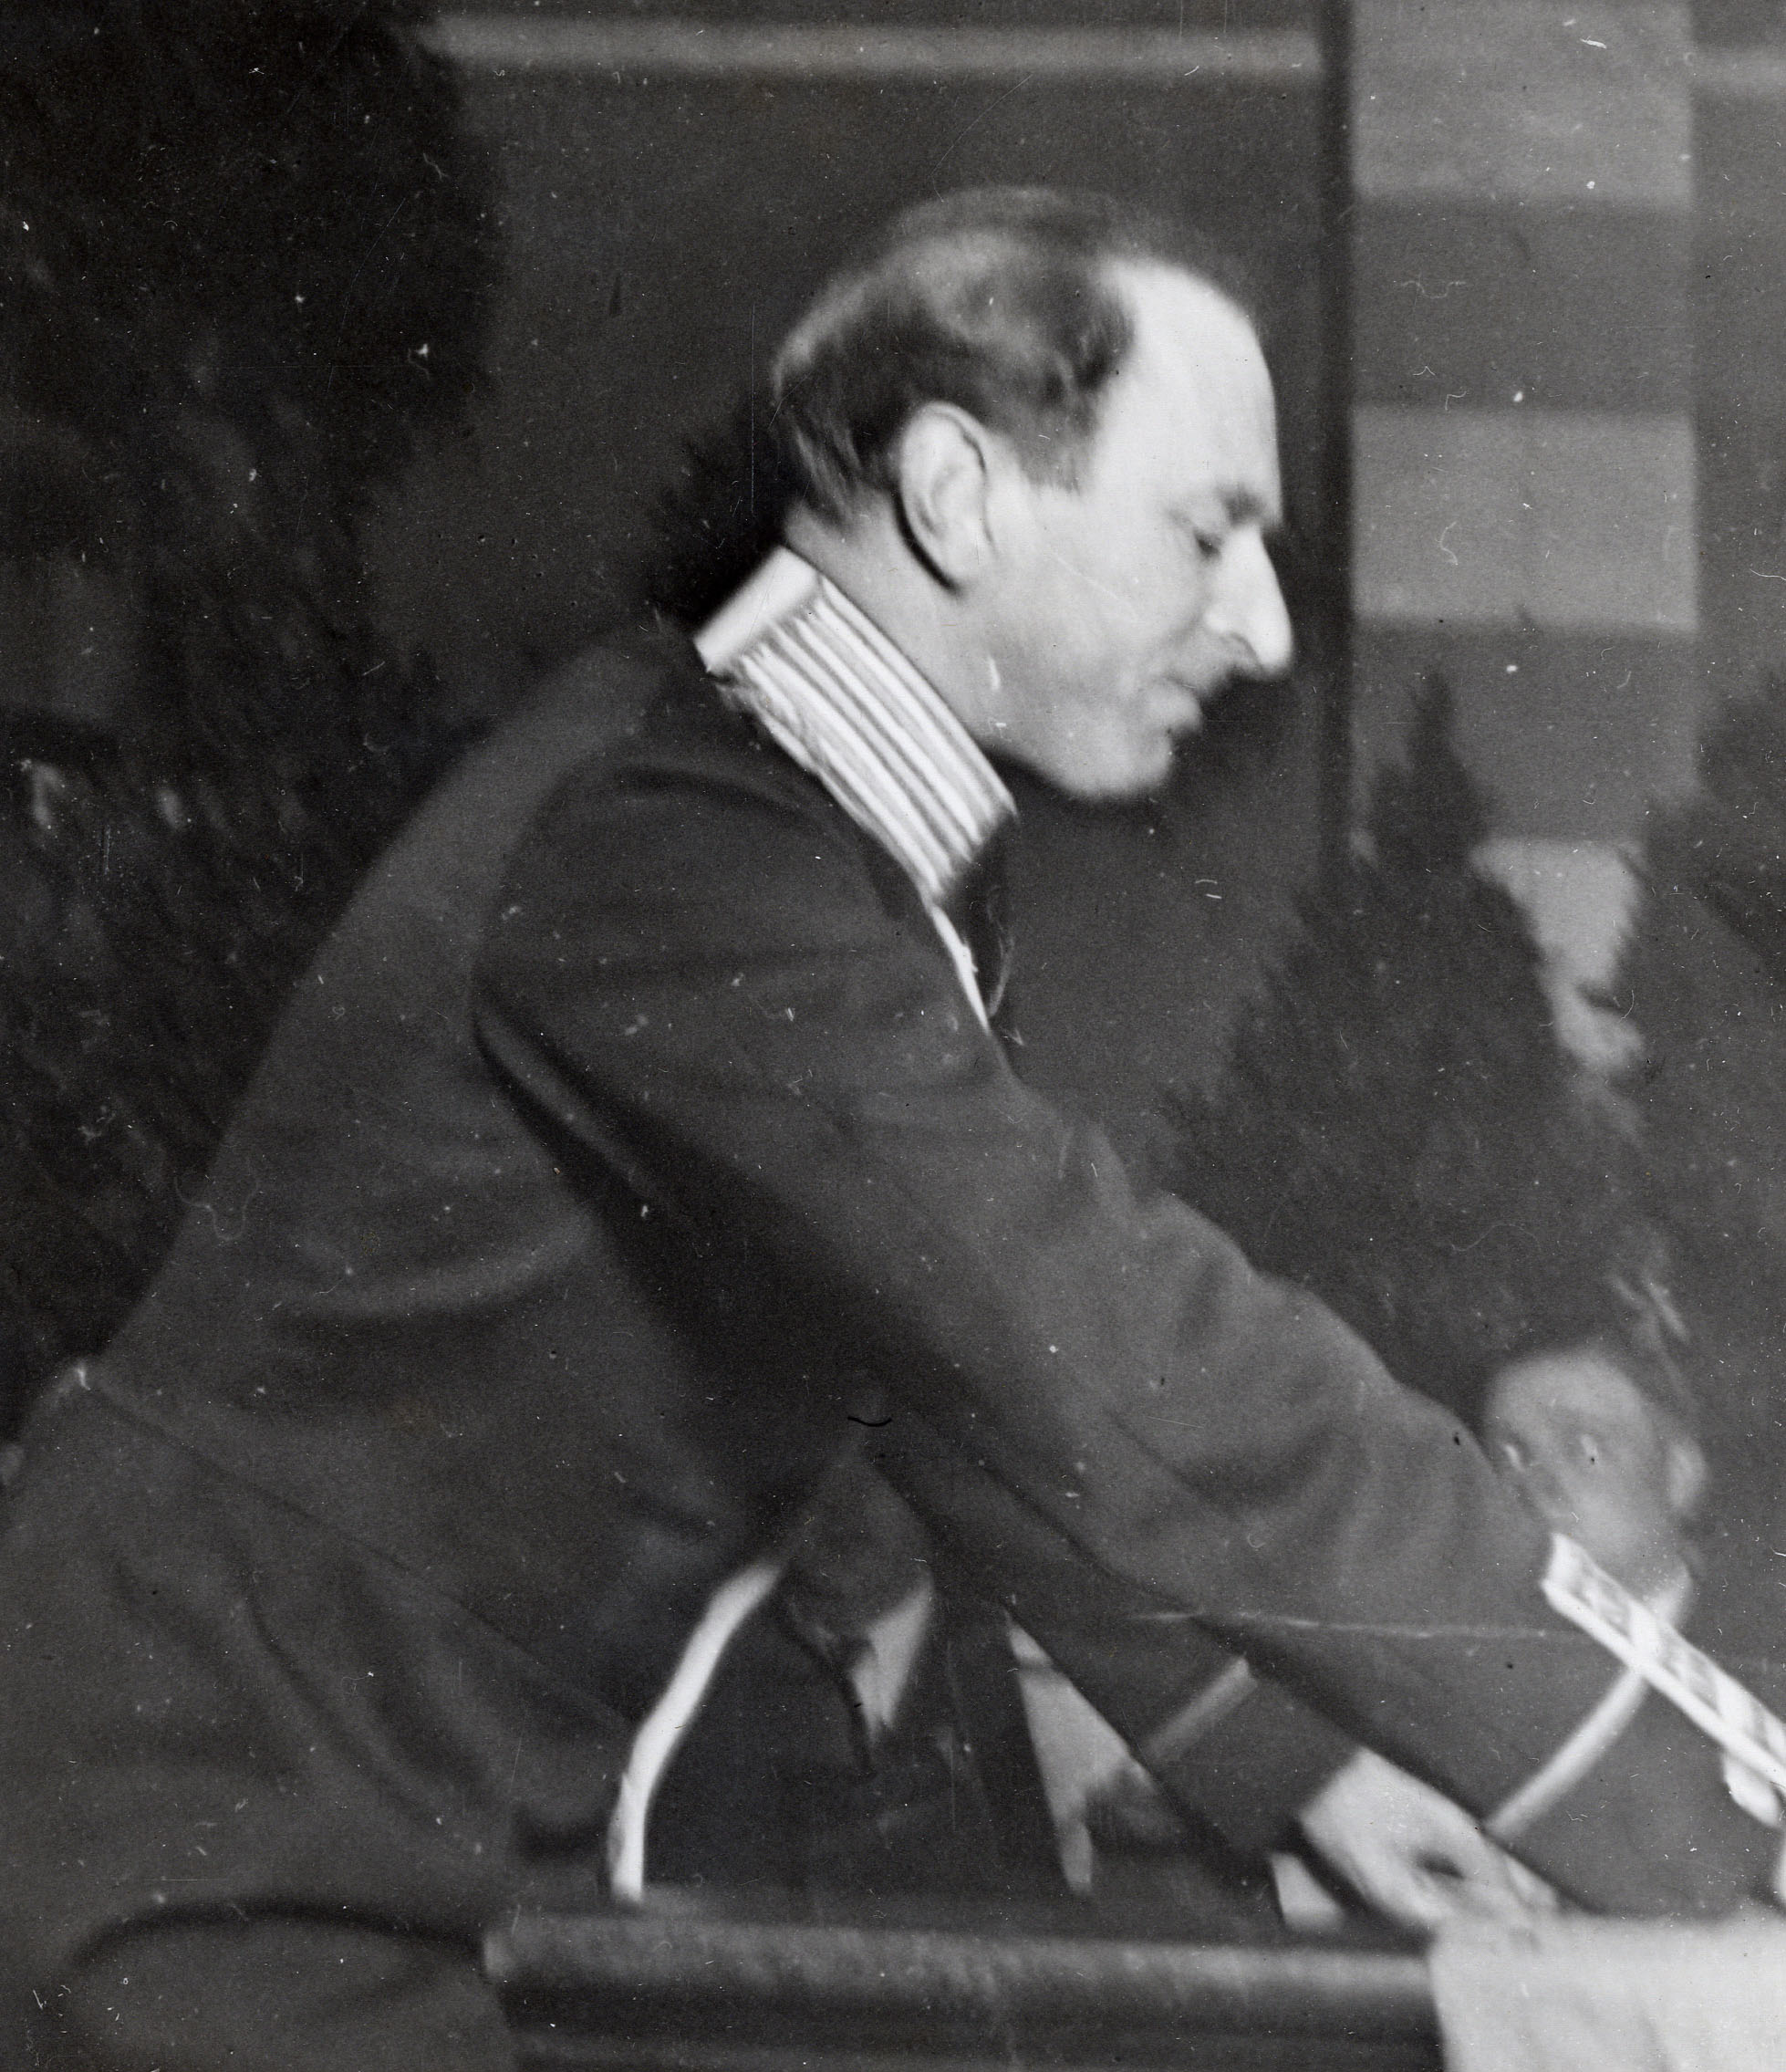 Ivar af Sillén holds his speech at the charity function, February 2, 1935